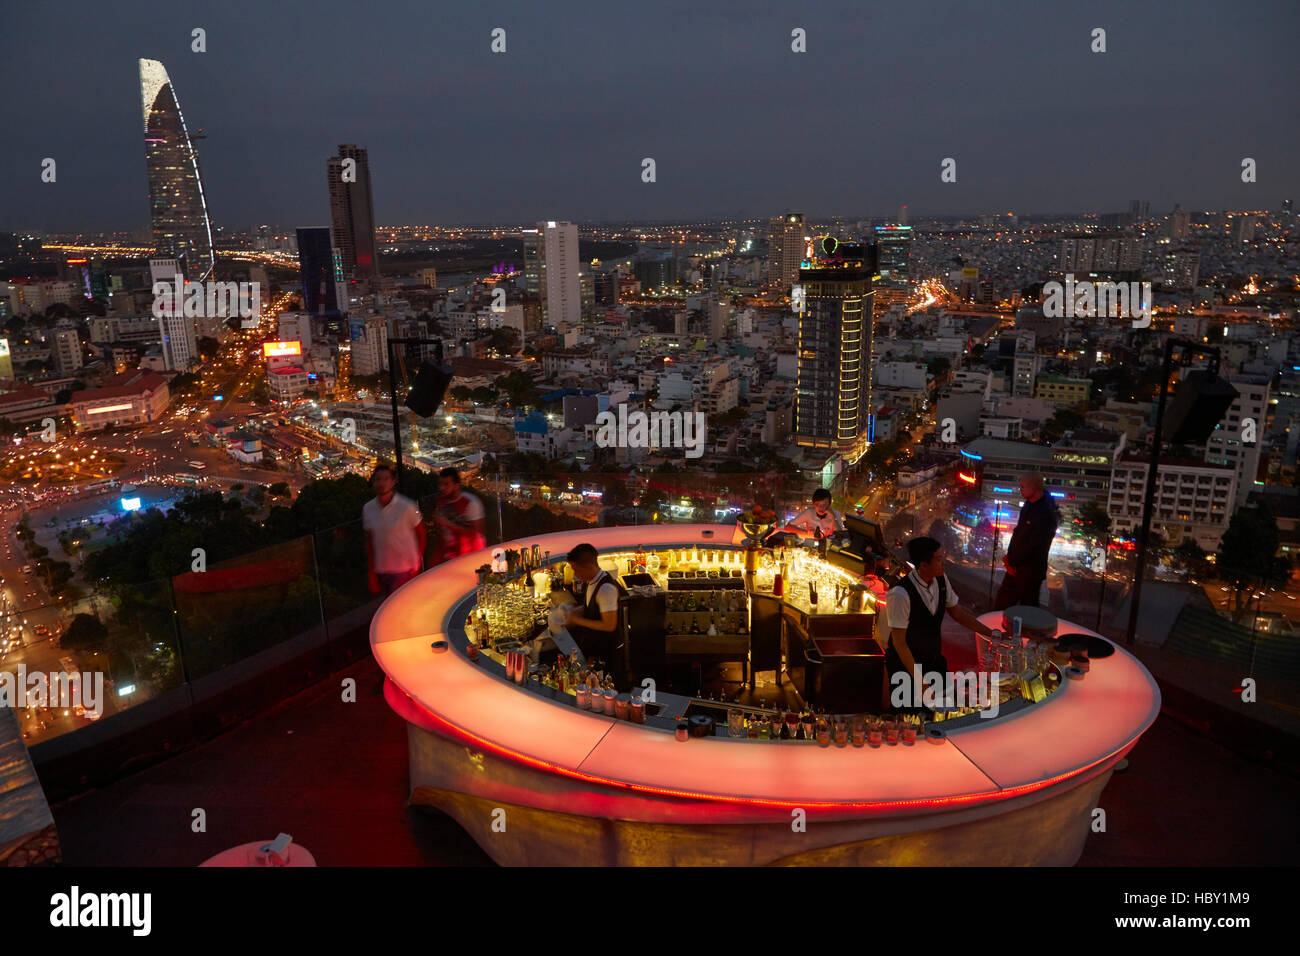 Chill Skybar at dusk, Ho Chi Minh (Saigon), Vietnam - Stock Image